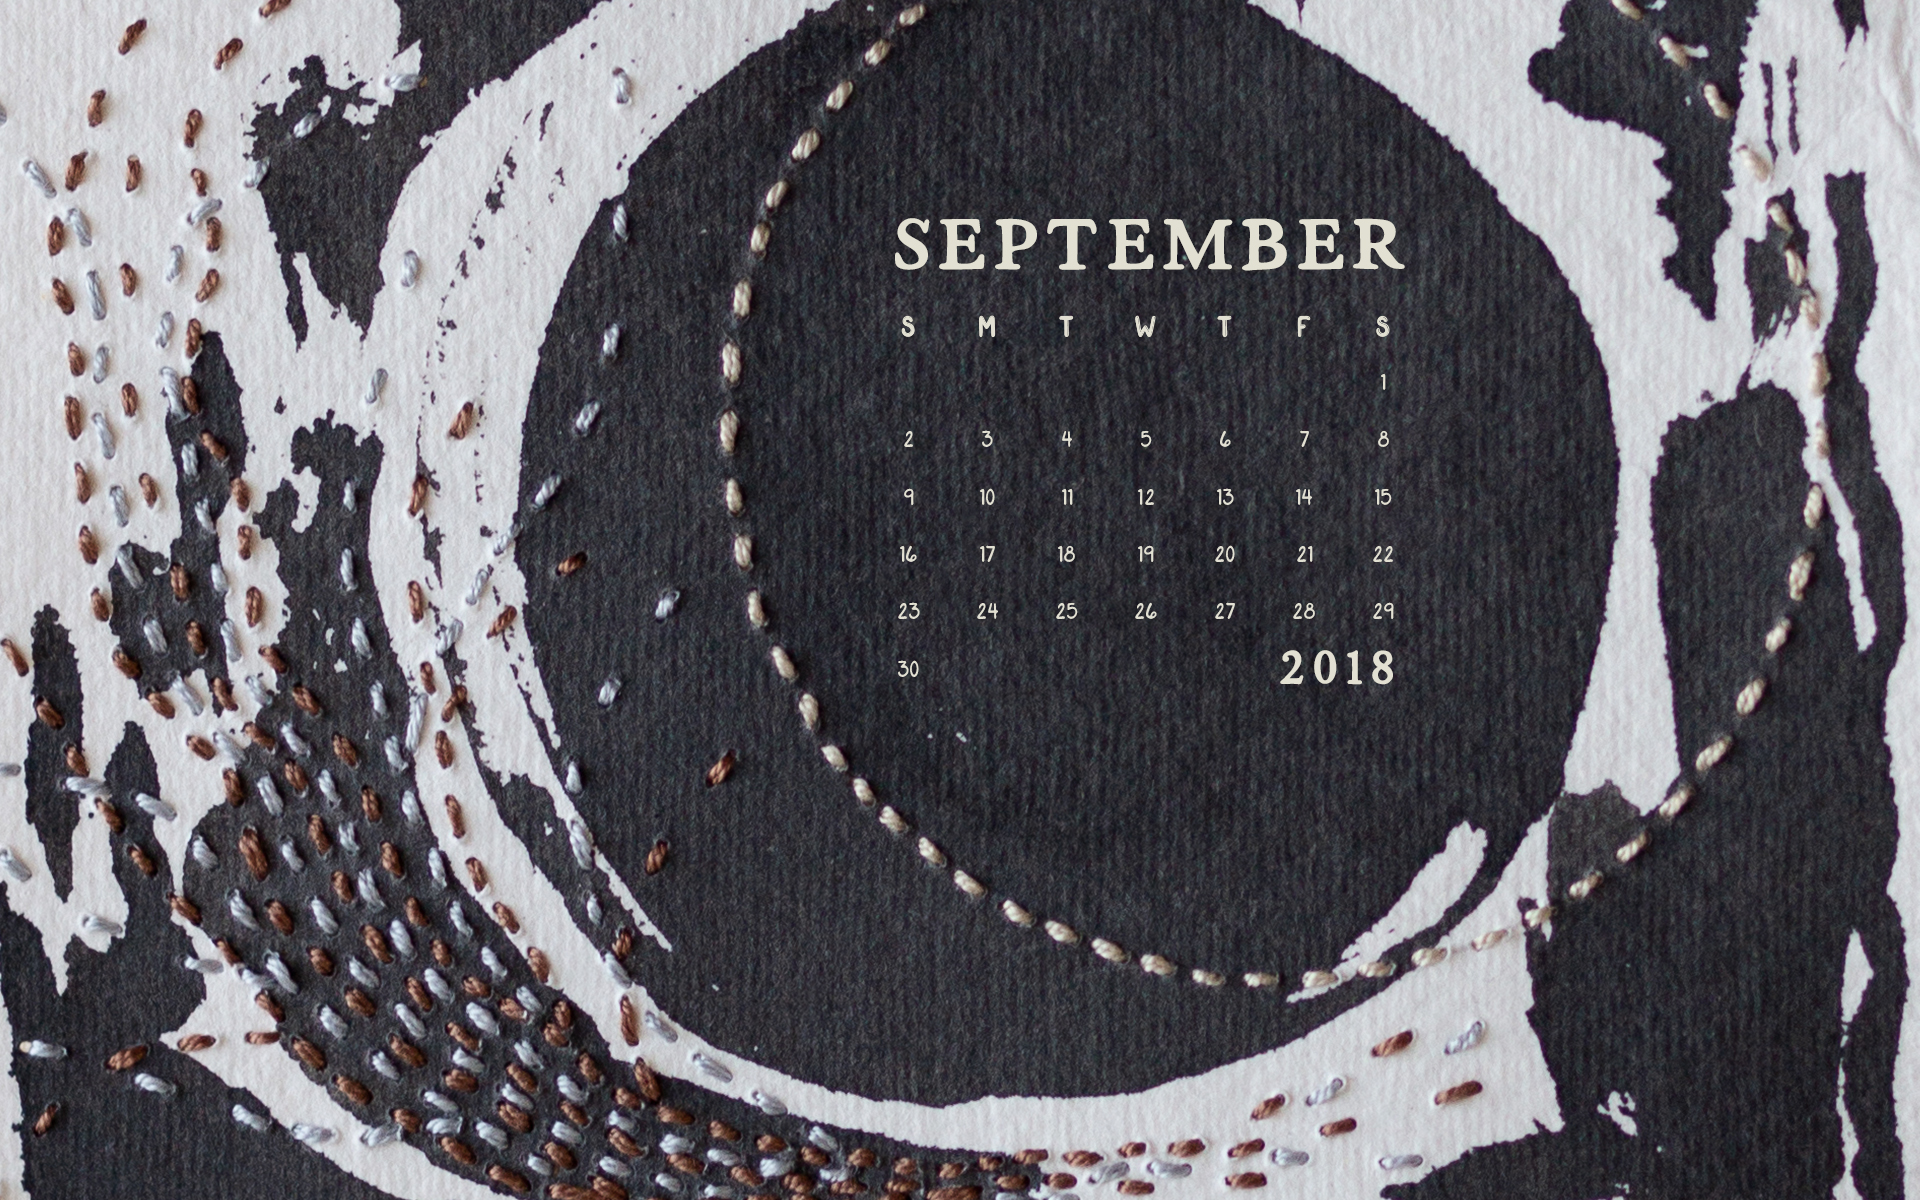 September Desktop Computer Calendar Wallpaper by Britt Fabello